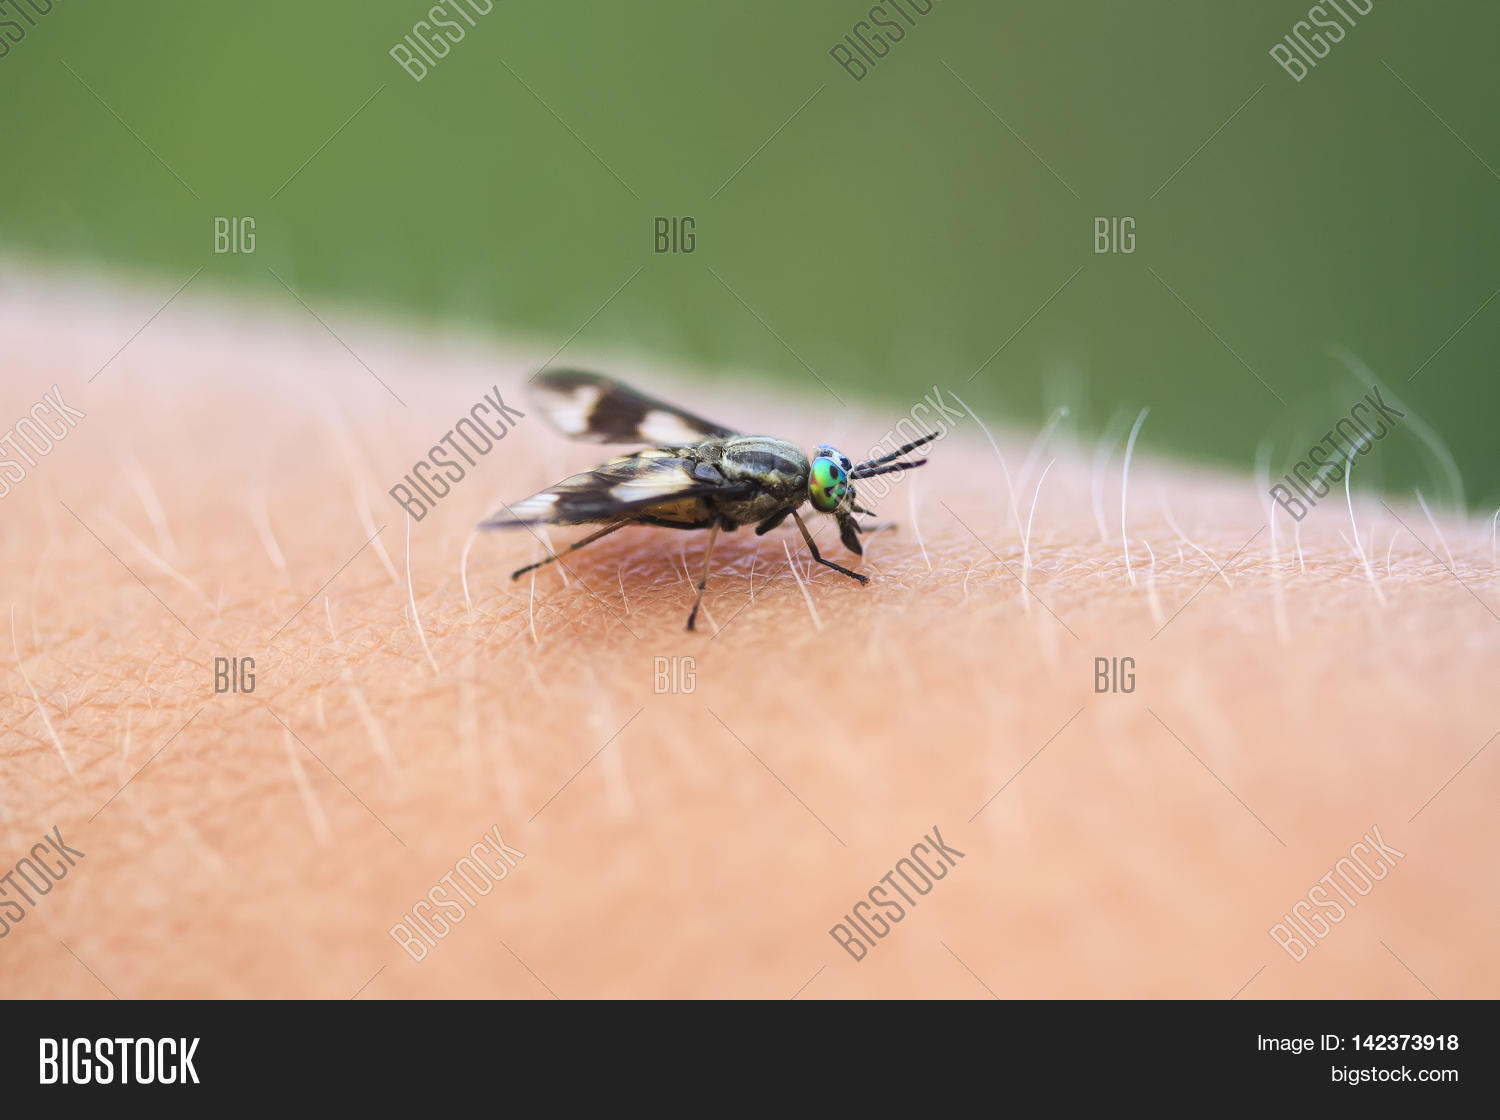 Gadfly - an insect attacking animals and humans. What to do when biting gadfly 51